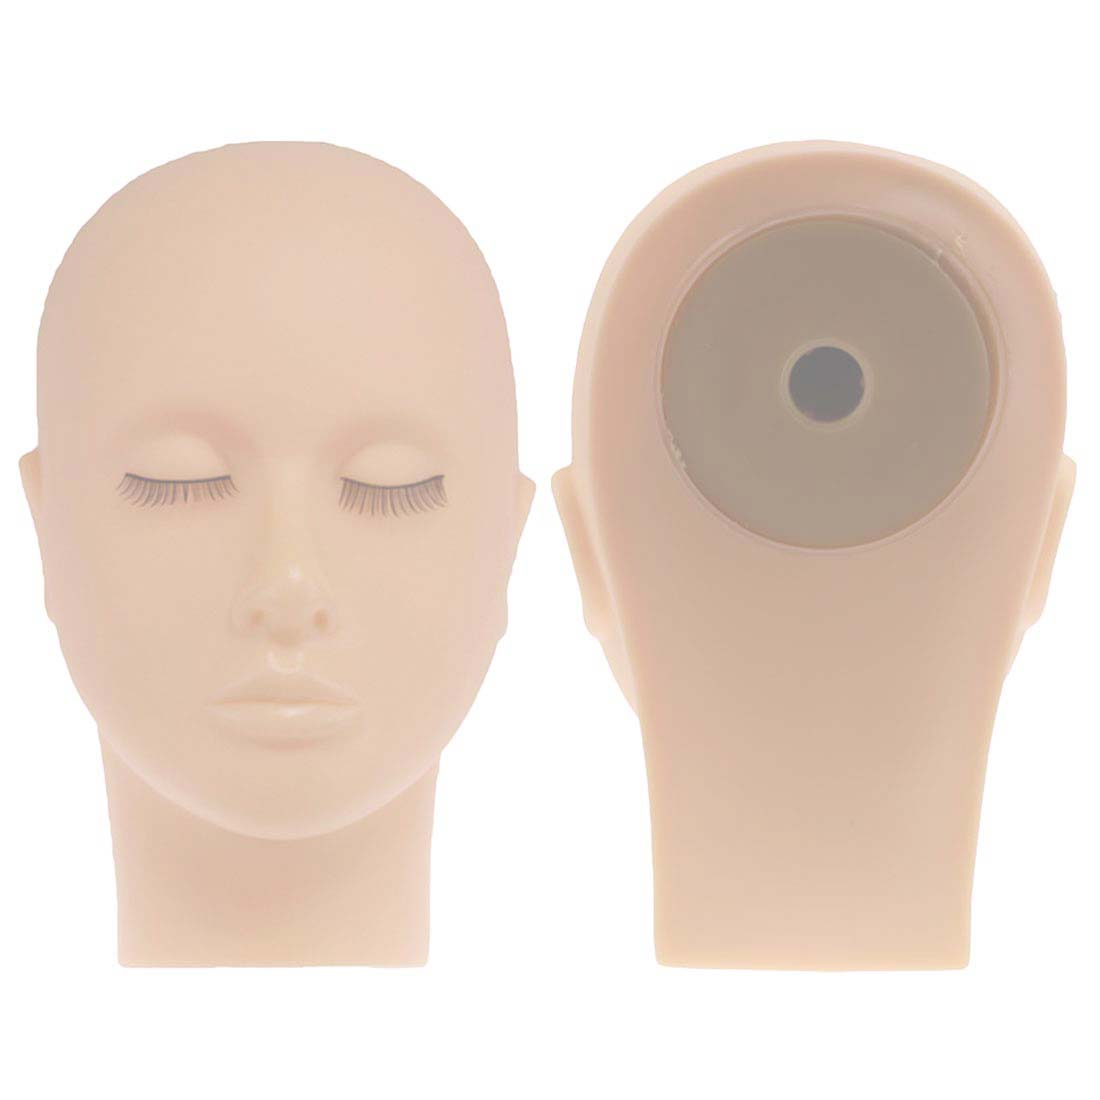 High Quality Mannequin Flat Head Silicone Practice False Eyelash Extensions Make Up Model Massage Training Heads 1pc